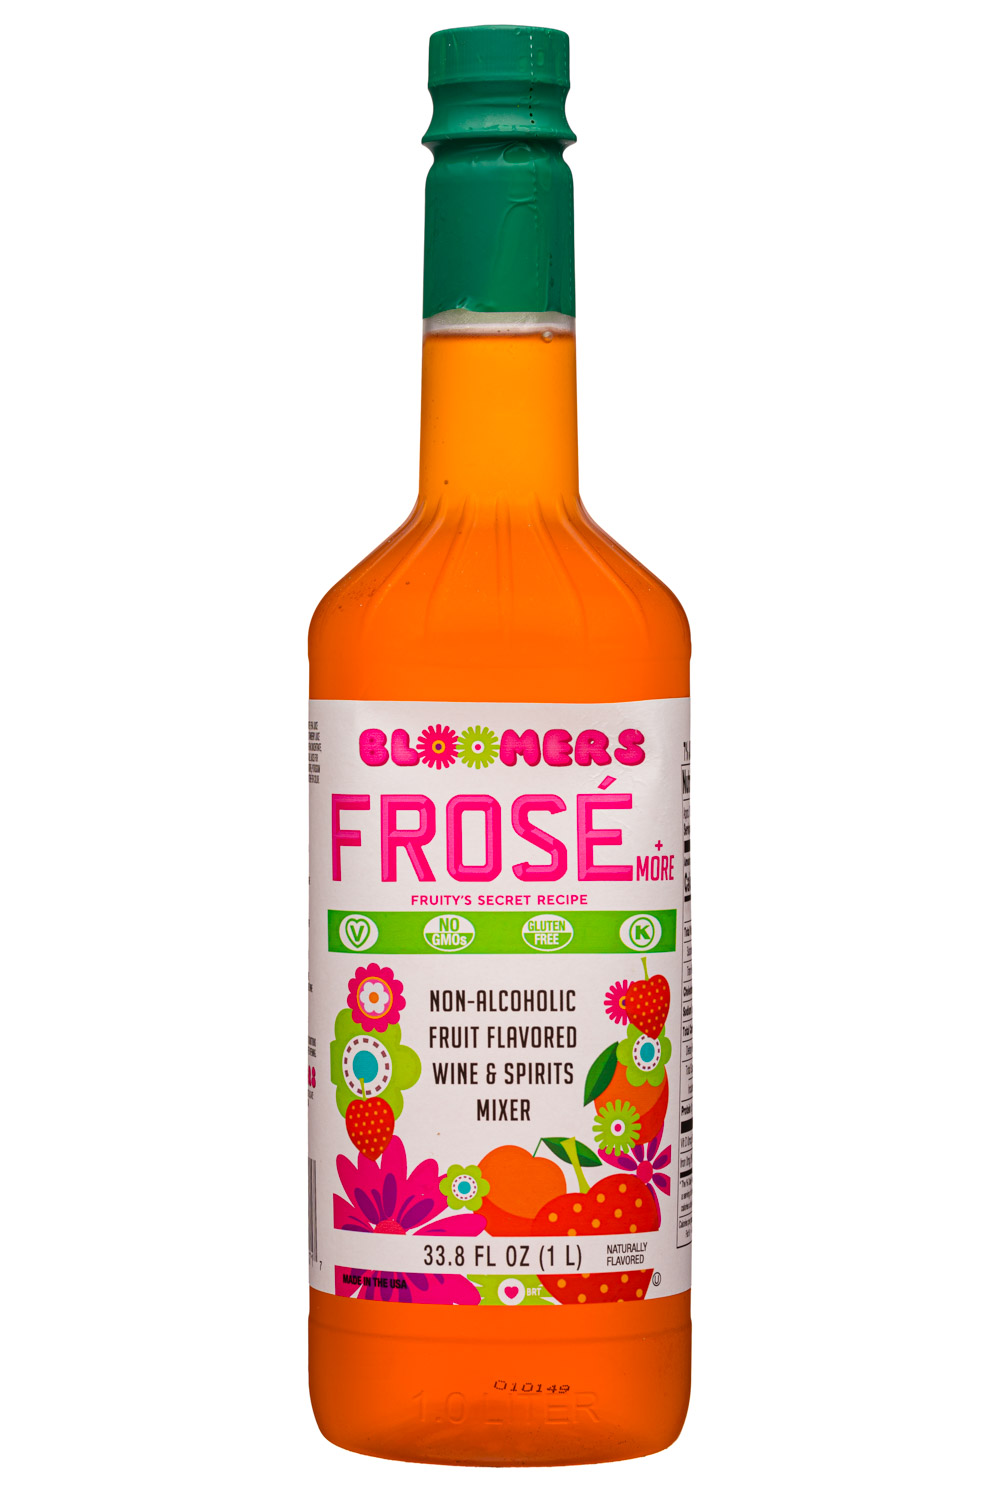 Bloomers Frose